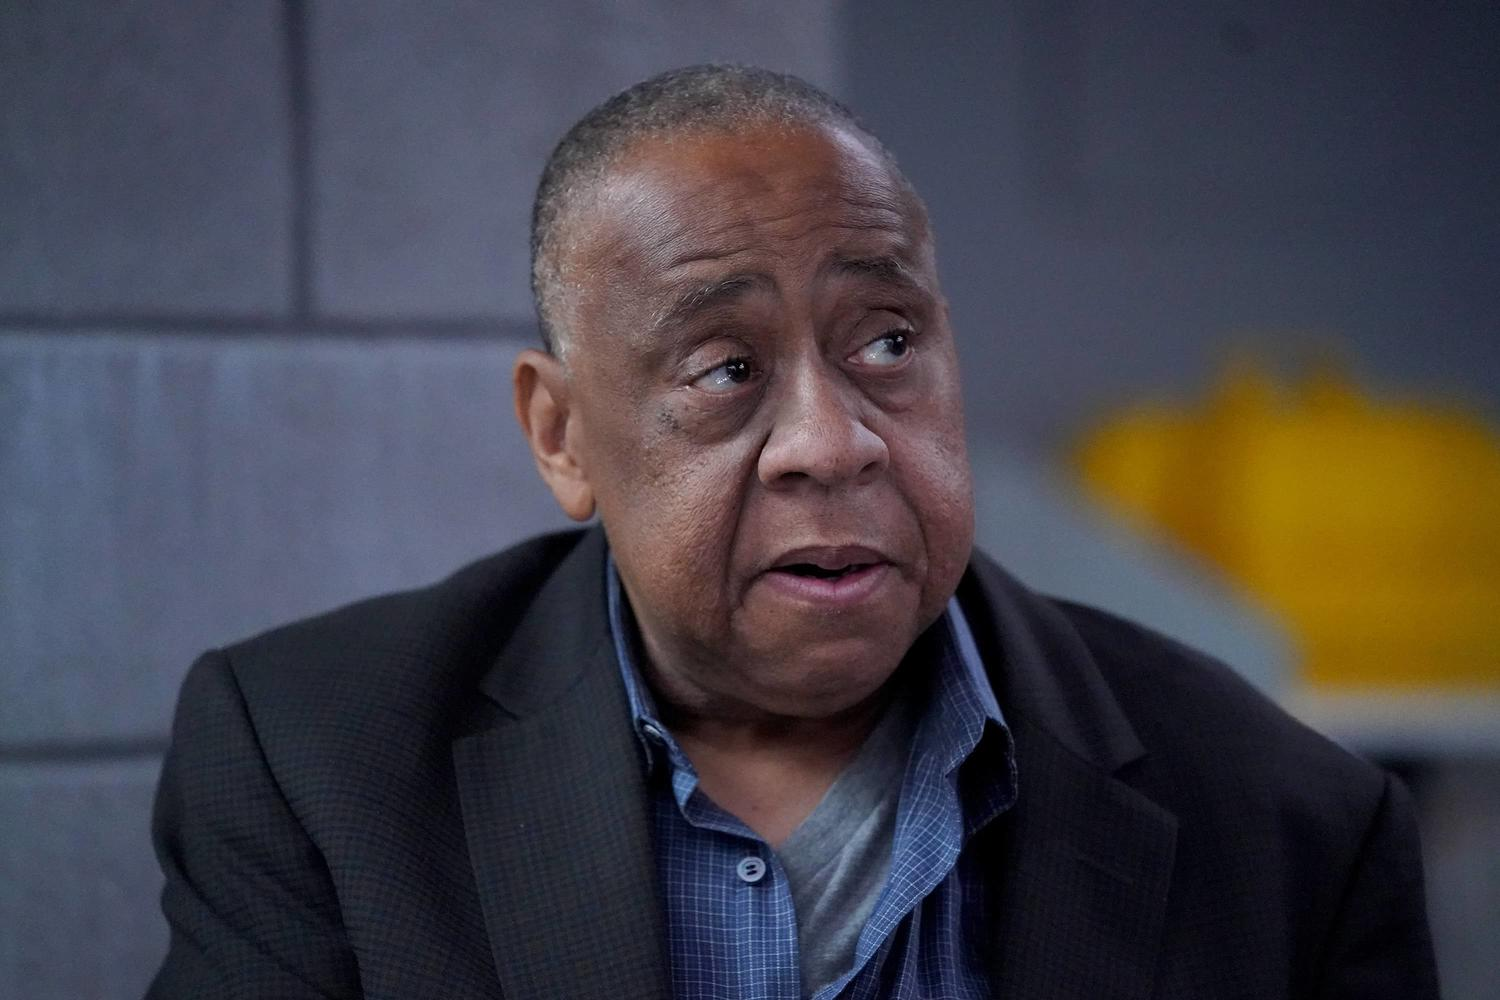 DR. MARCUS BENSON (PLAYED BY BARRY SHABAKA HENLEY)